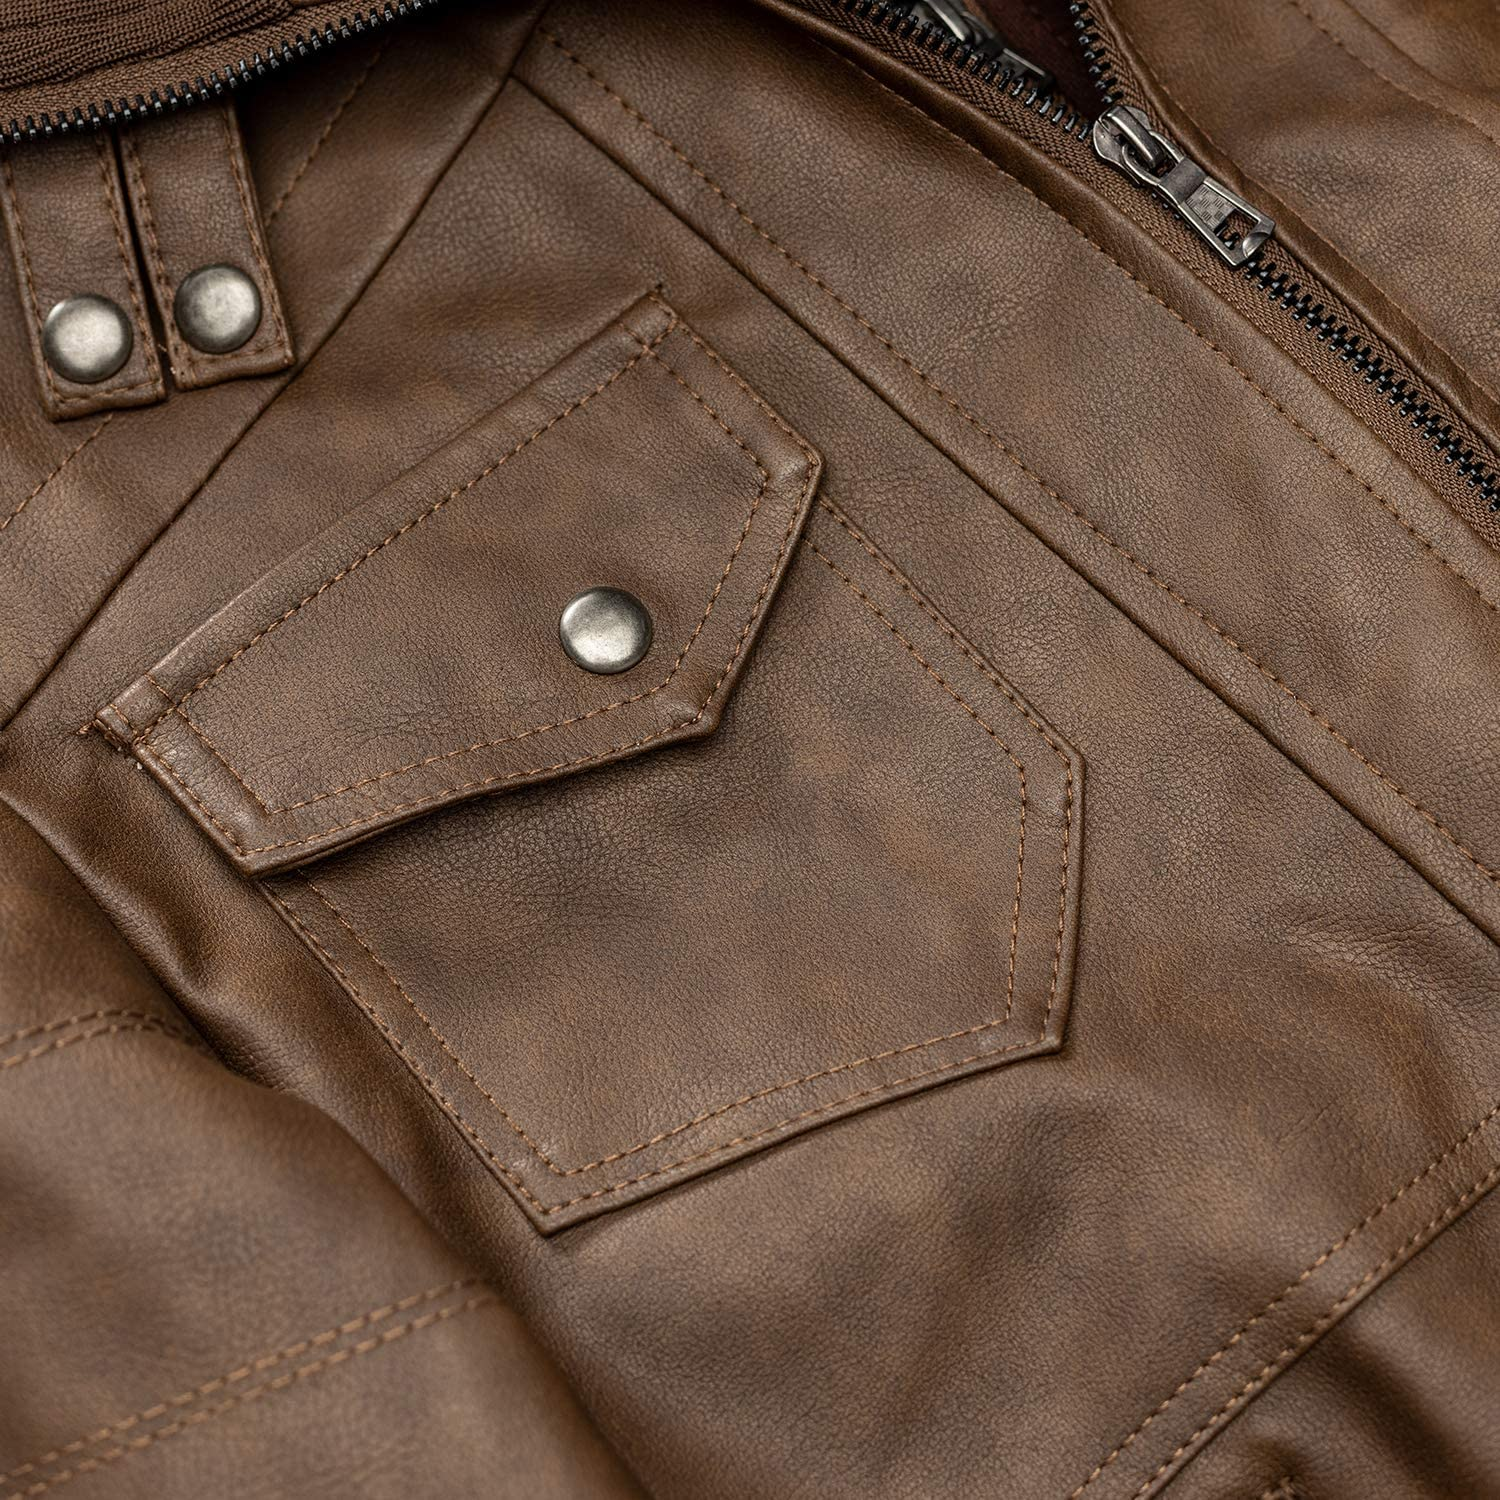 WULFUL Mens Vintage Motorcycle Faux Leather Jacket Outwear Winter Jackets with Removable Hood